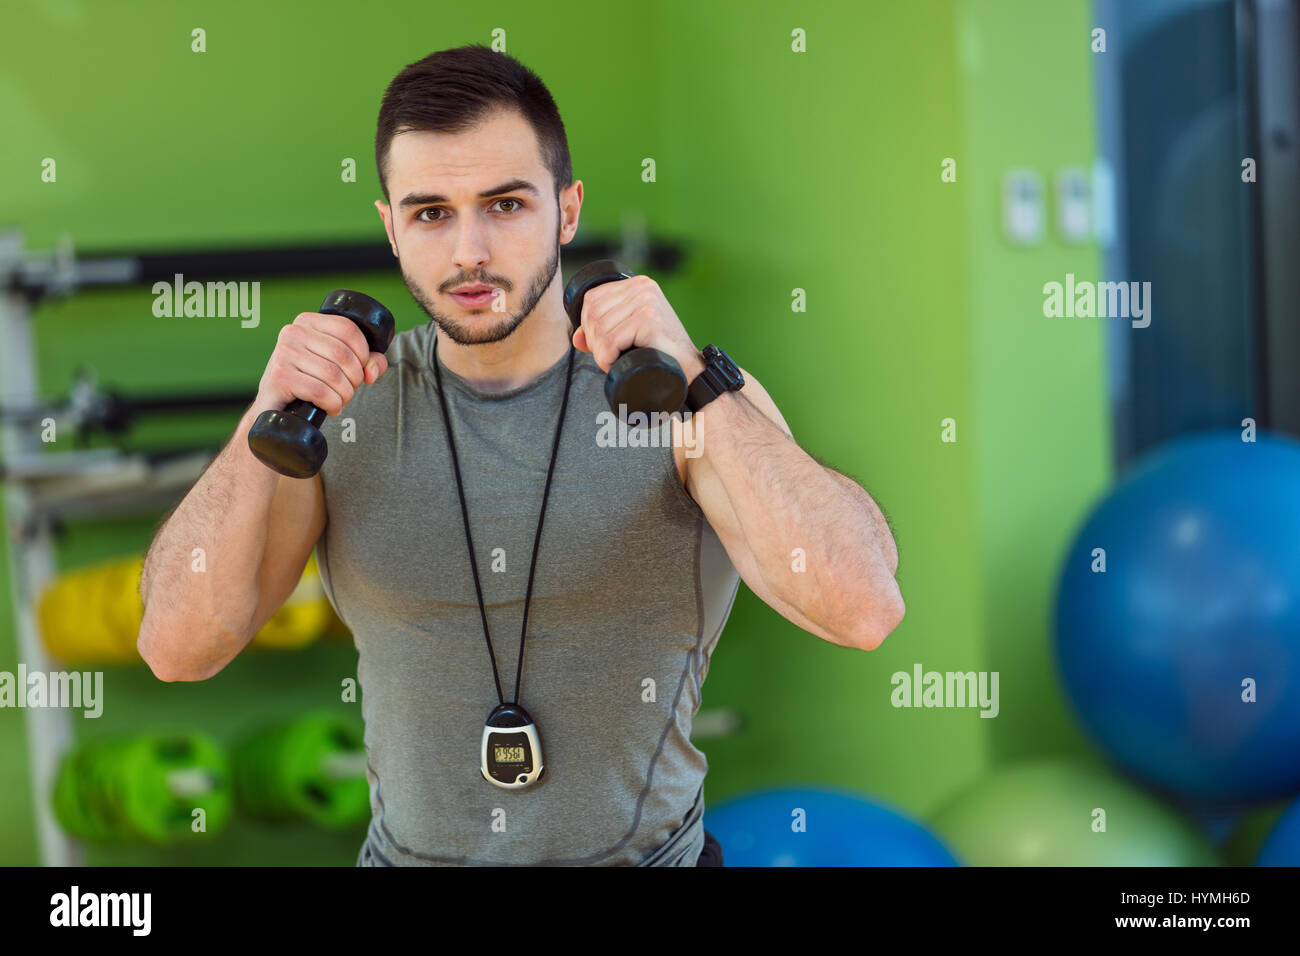 Young man lifting dumbbell at the fitness center - Stock Image